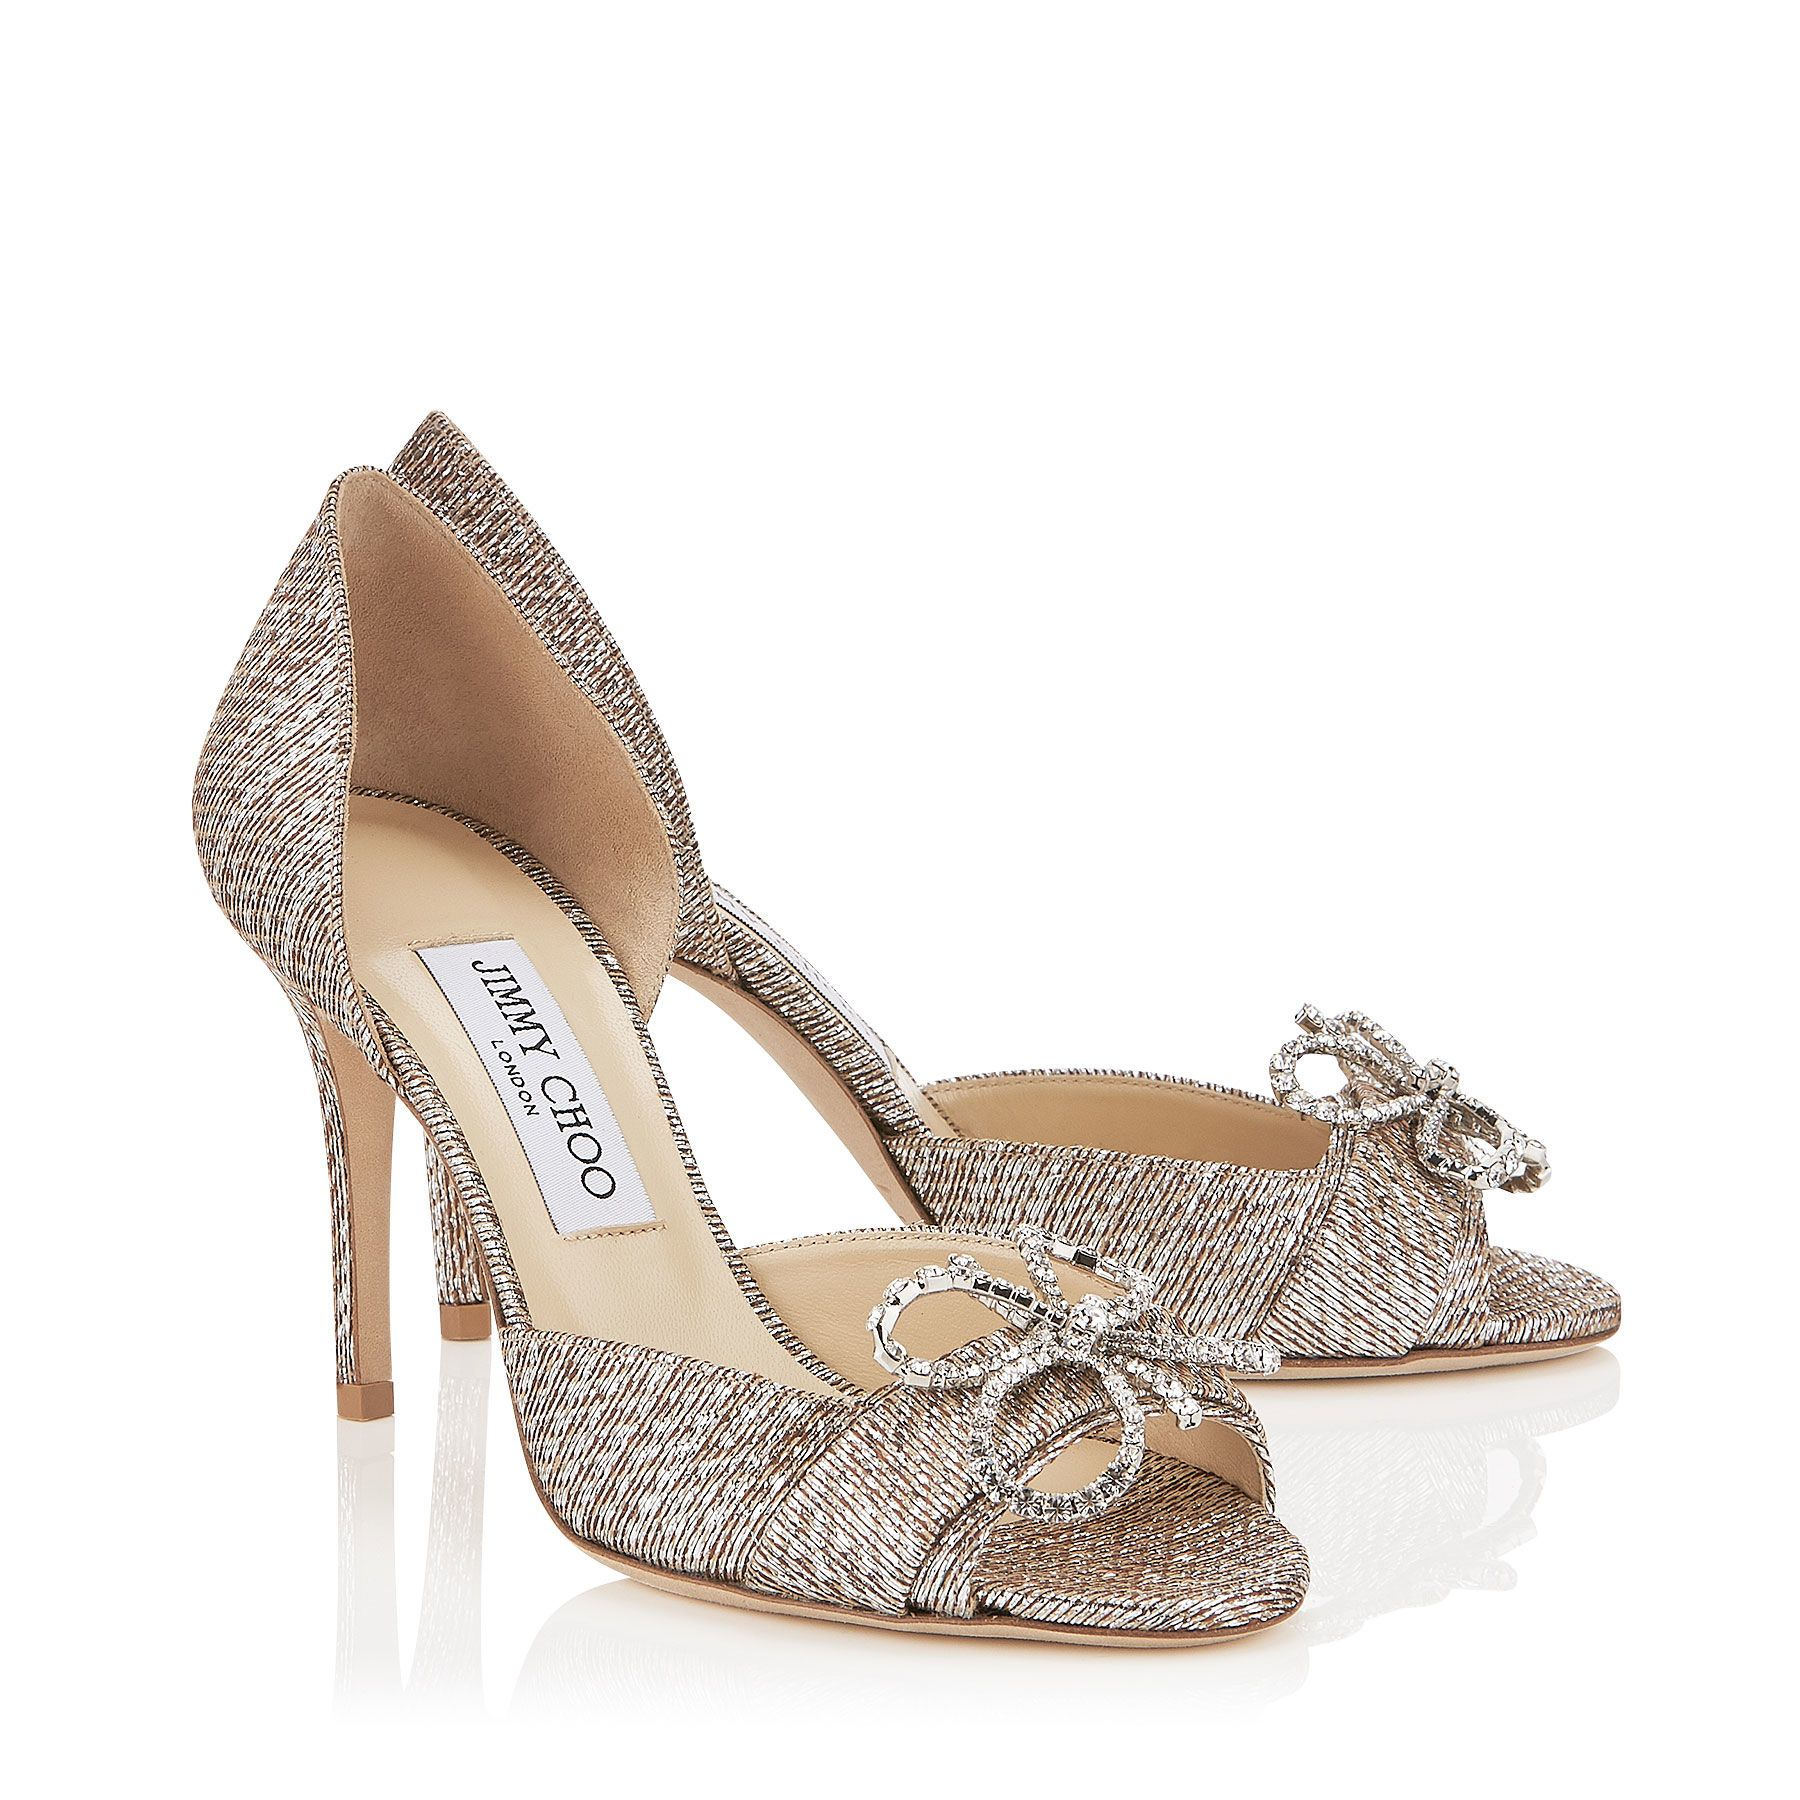 Jimmy Choo Metallic Bow Sandals pre order online outlet best latest collections online outlet online shop lKIZP2aa2